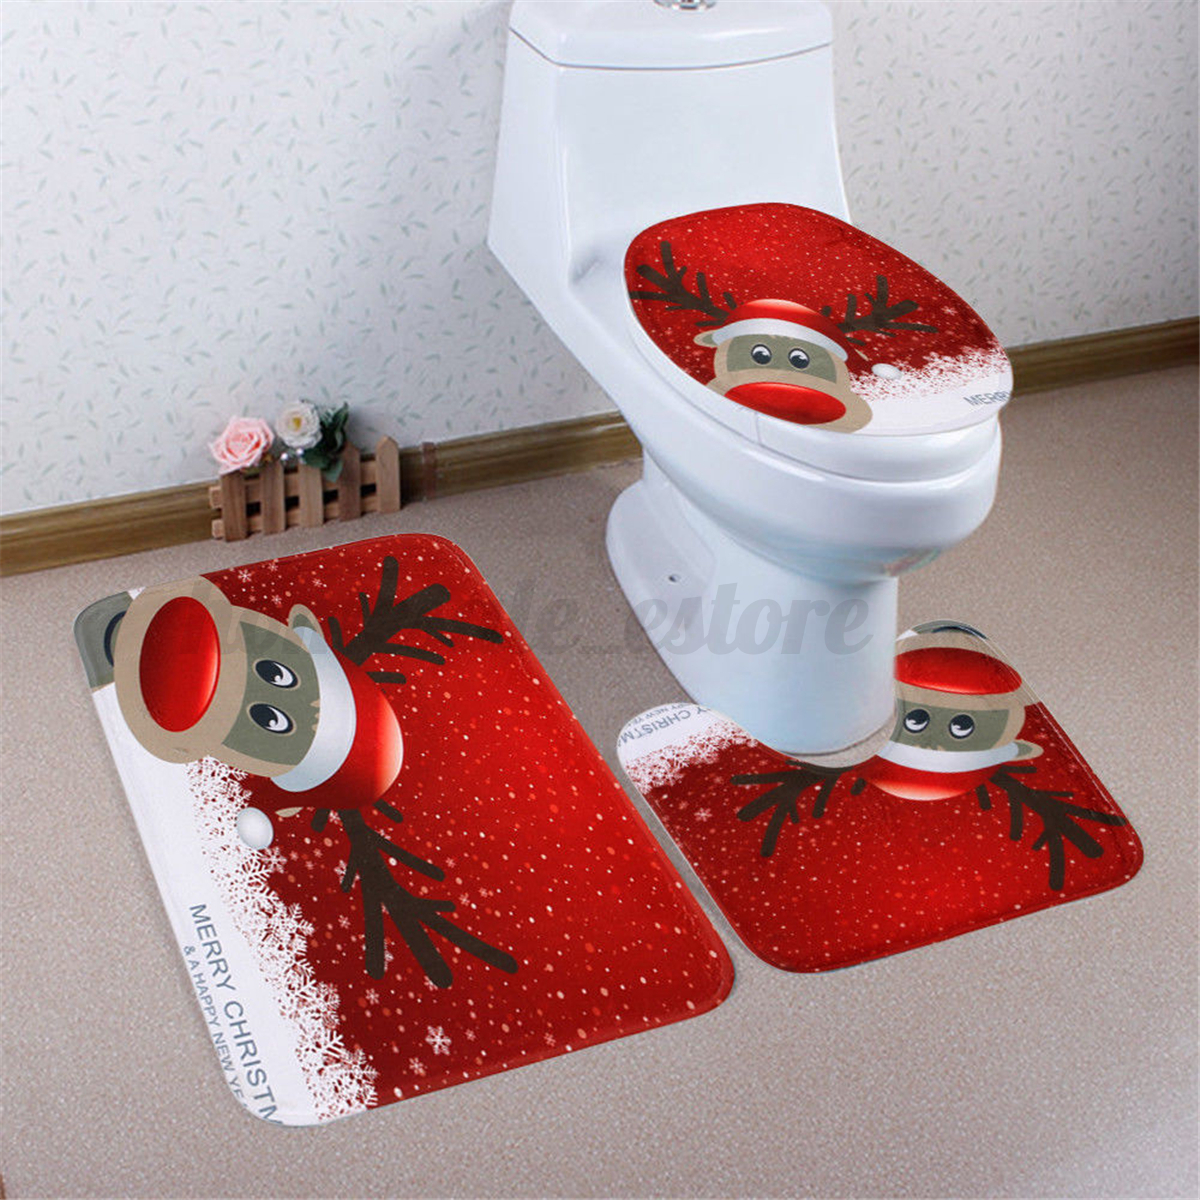 3pcs Set Christmas Snowman Santa Toilet Seat Cover Rug Bathroom Mat Xmas Decor Ebay